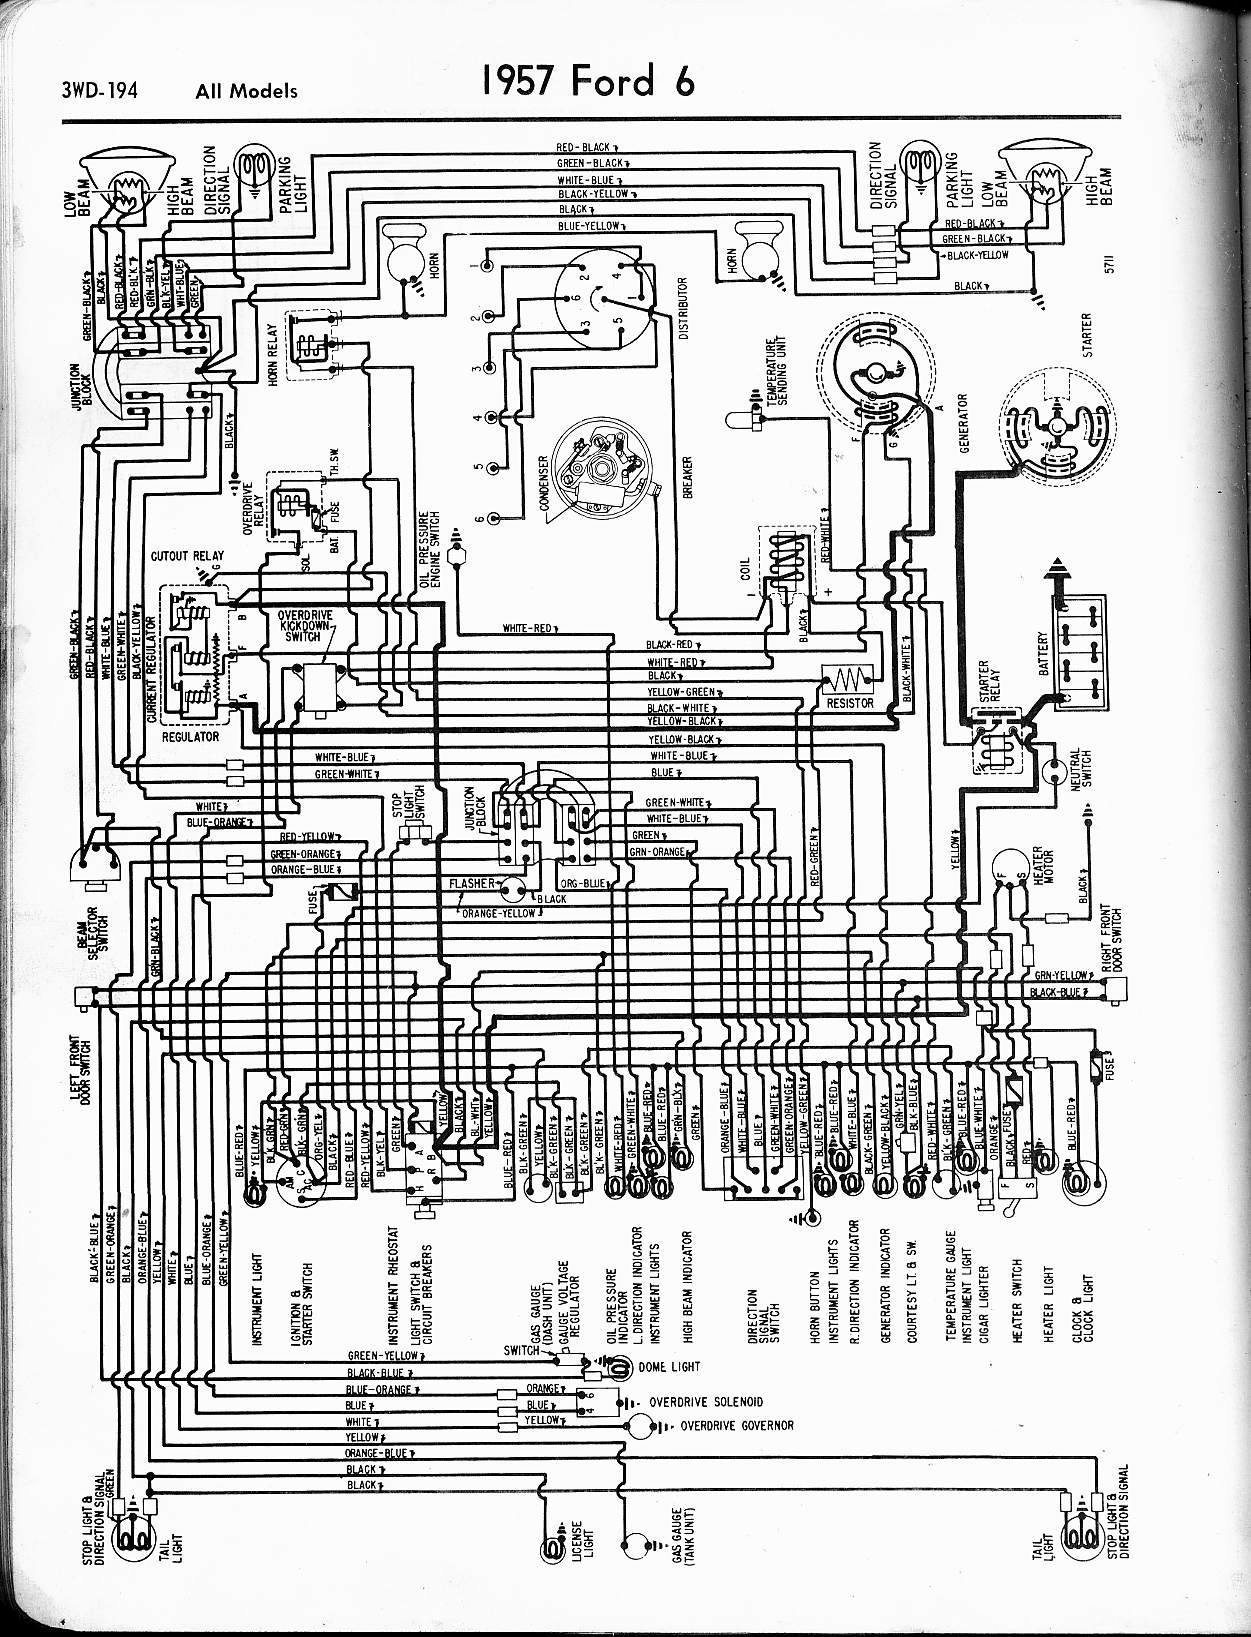 1969 ford fairlane wiring diagram ford diagrams ford nc fairlane wiring diagram